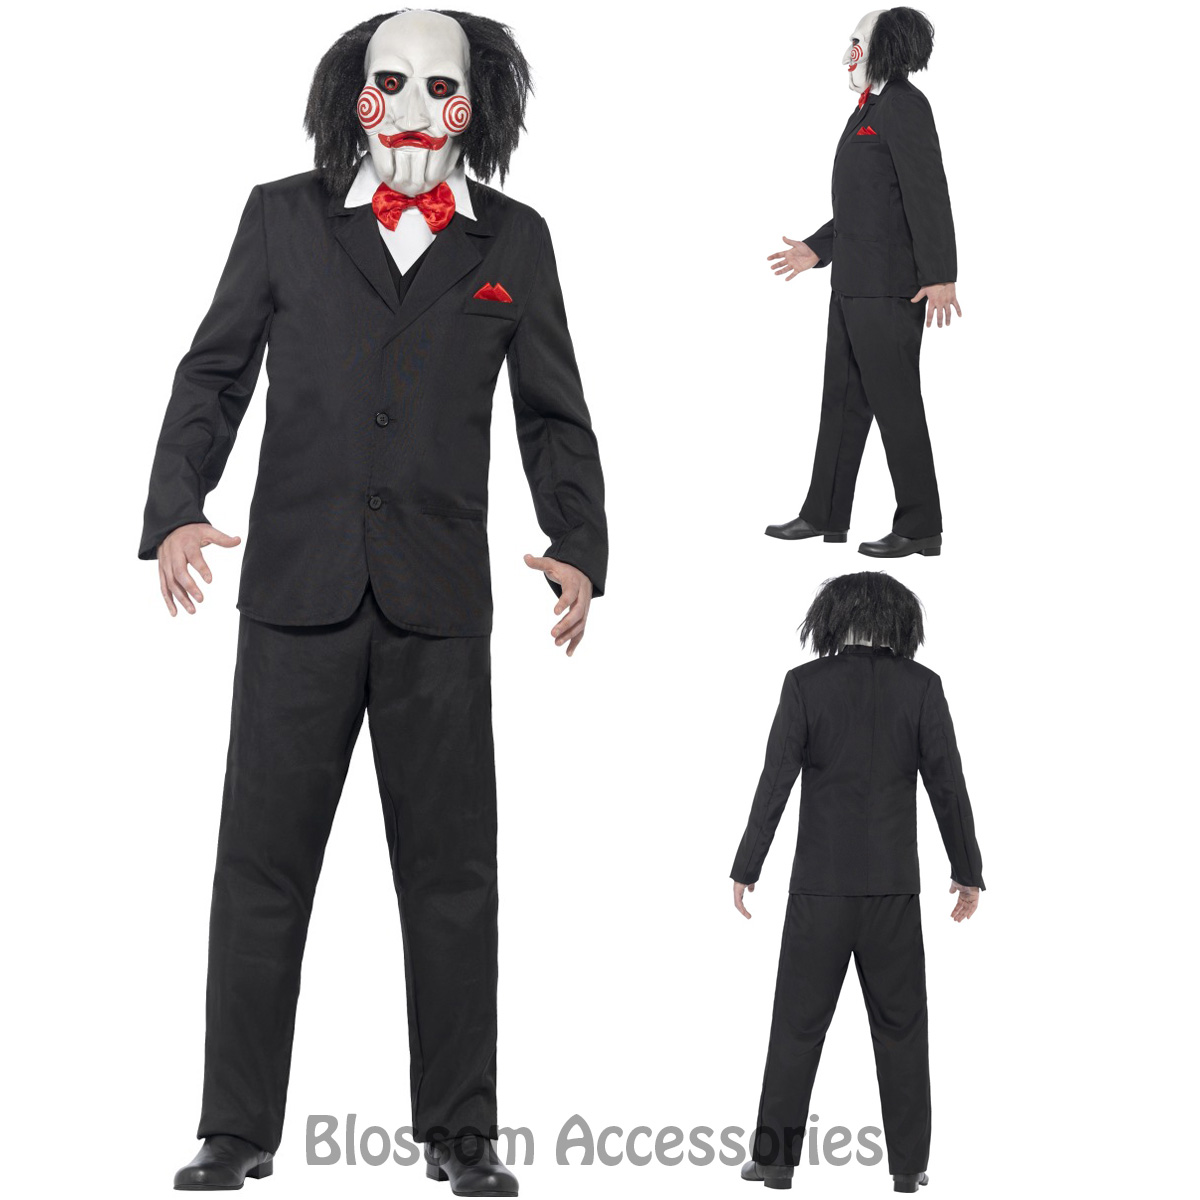 cl923 saw jigsaw creepy costume mens halloween movie horror scary